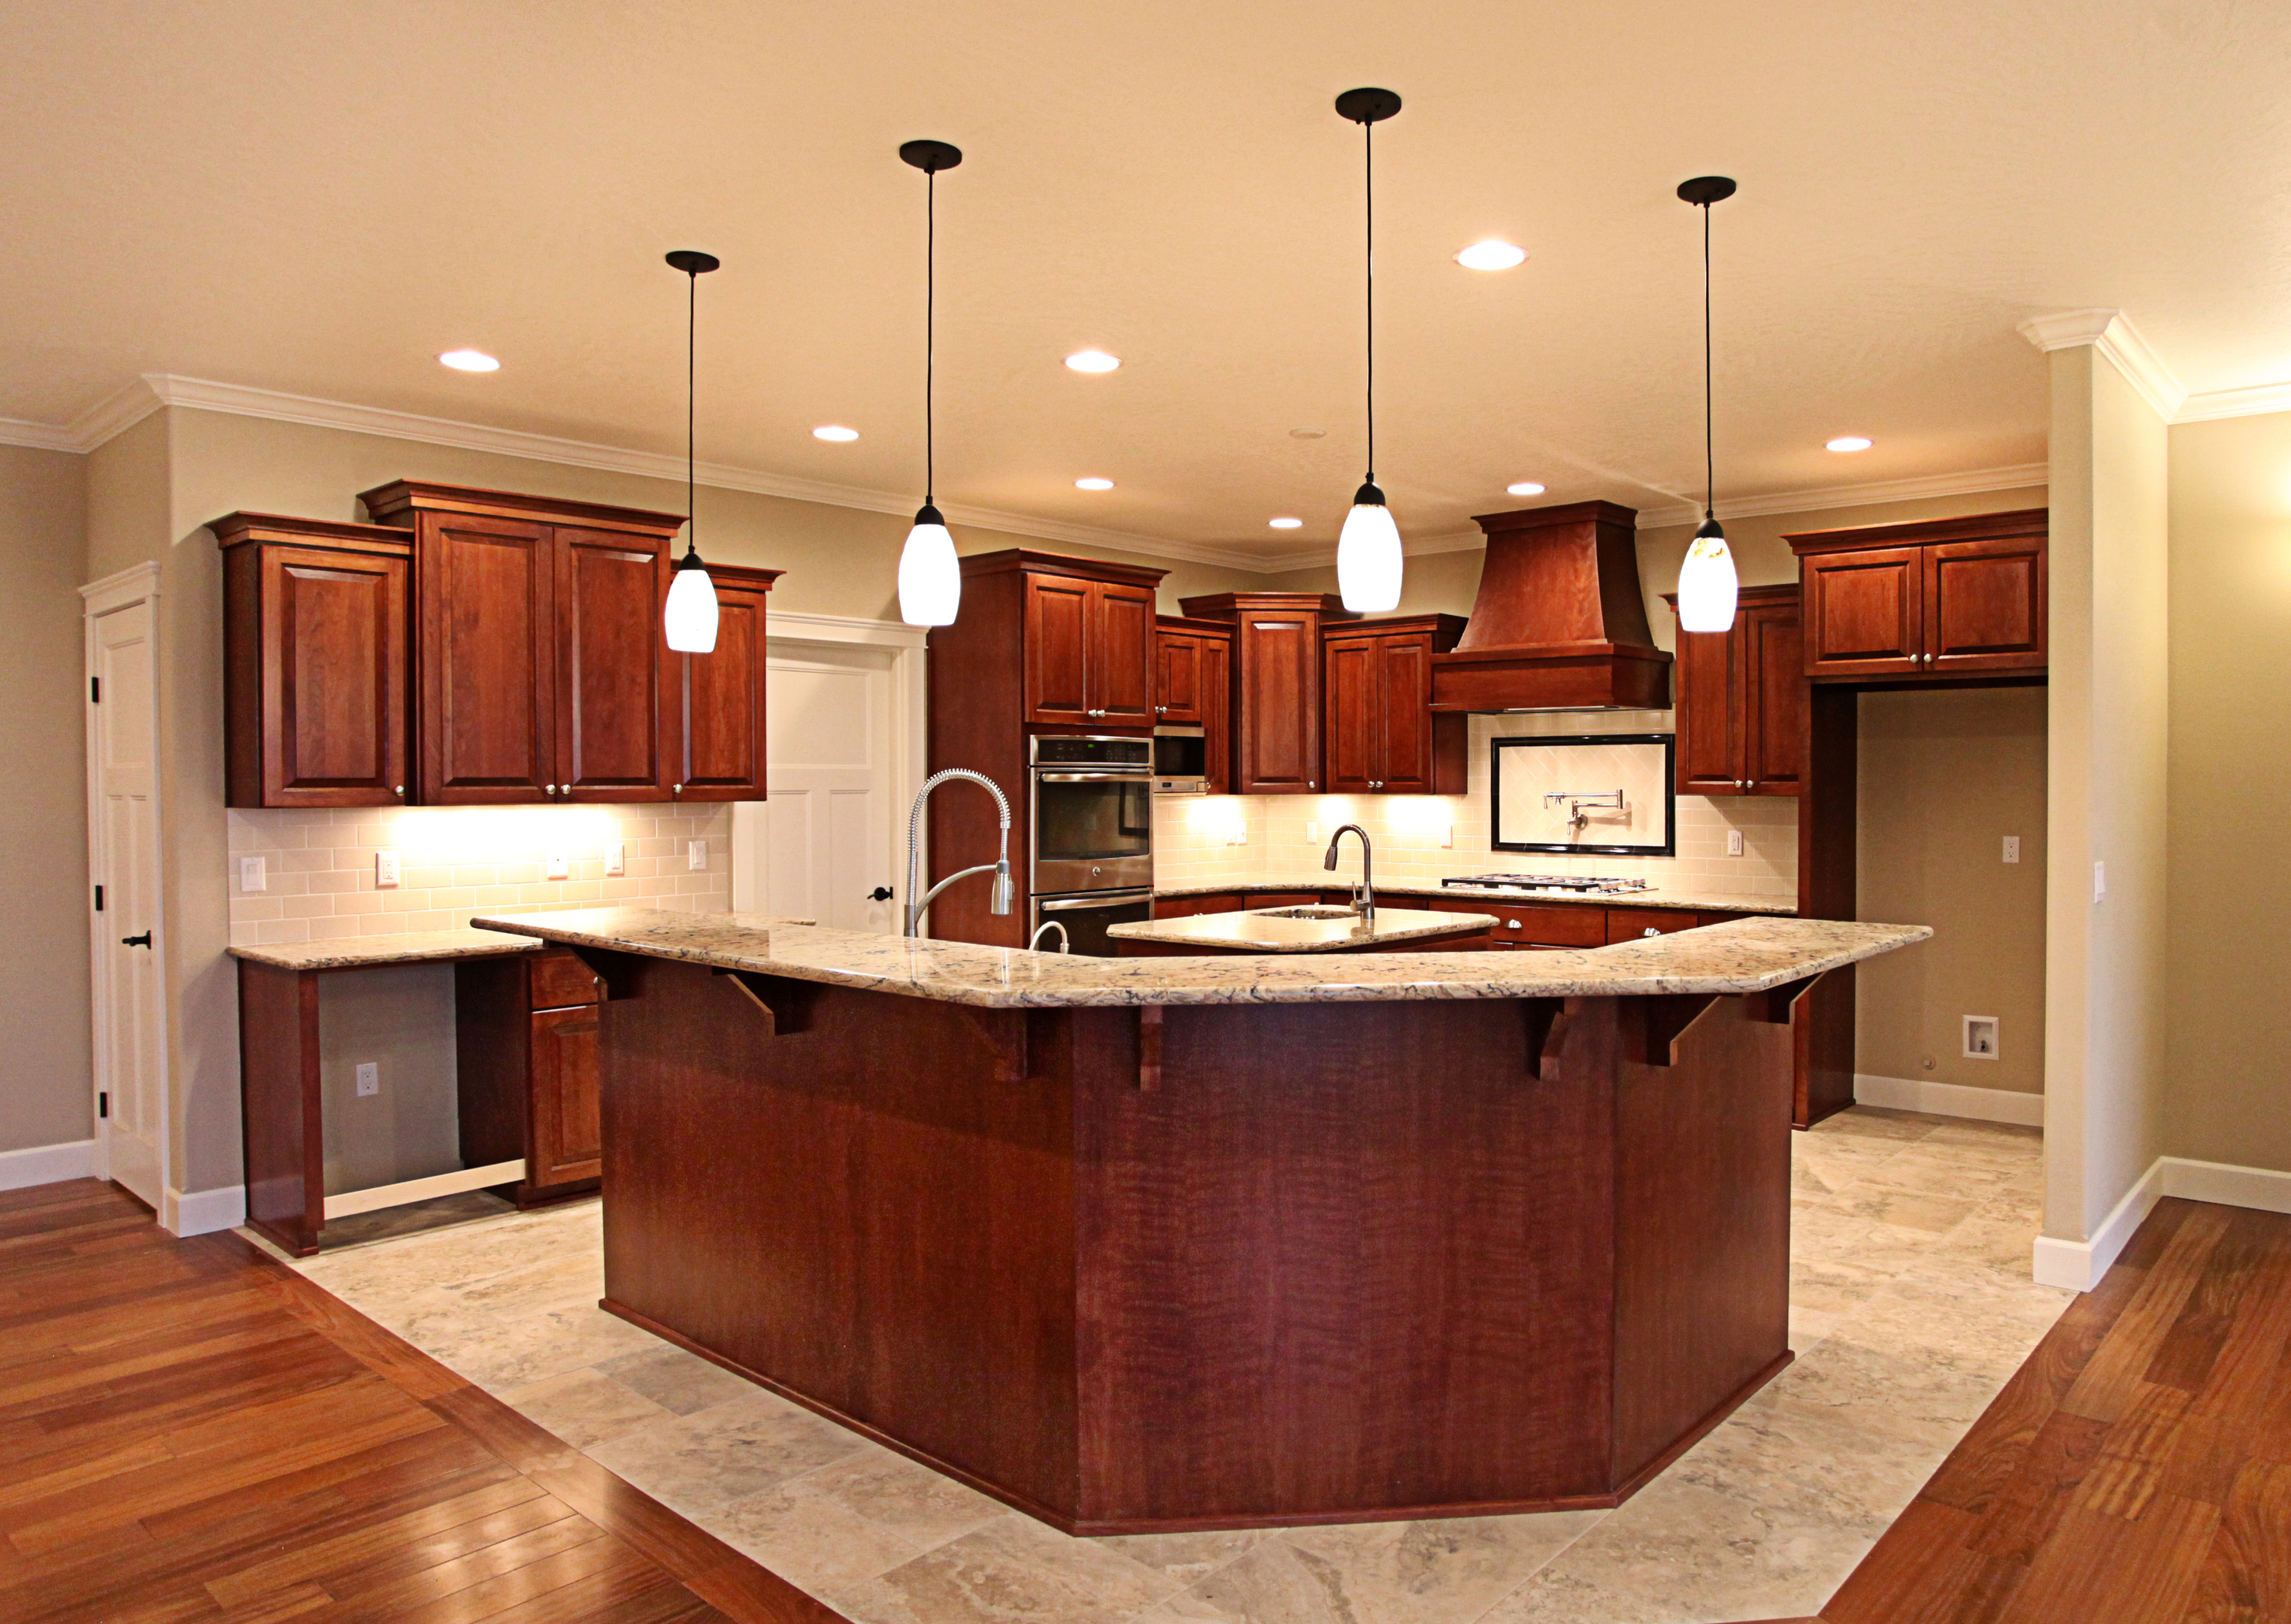 Get Gems Not Buy Search Results Kitchen Cabinet Stain Ideas